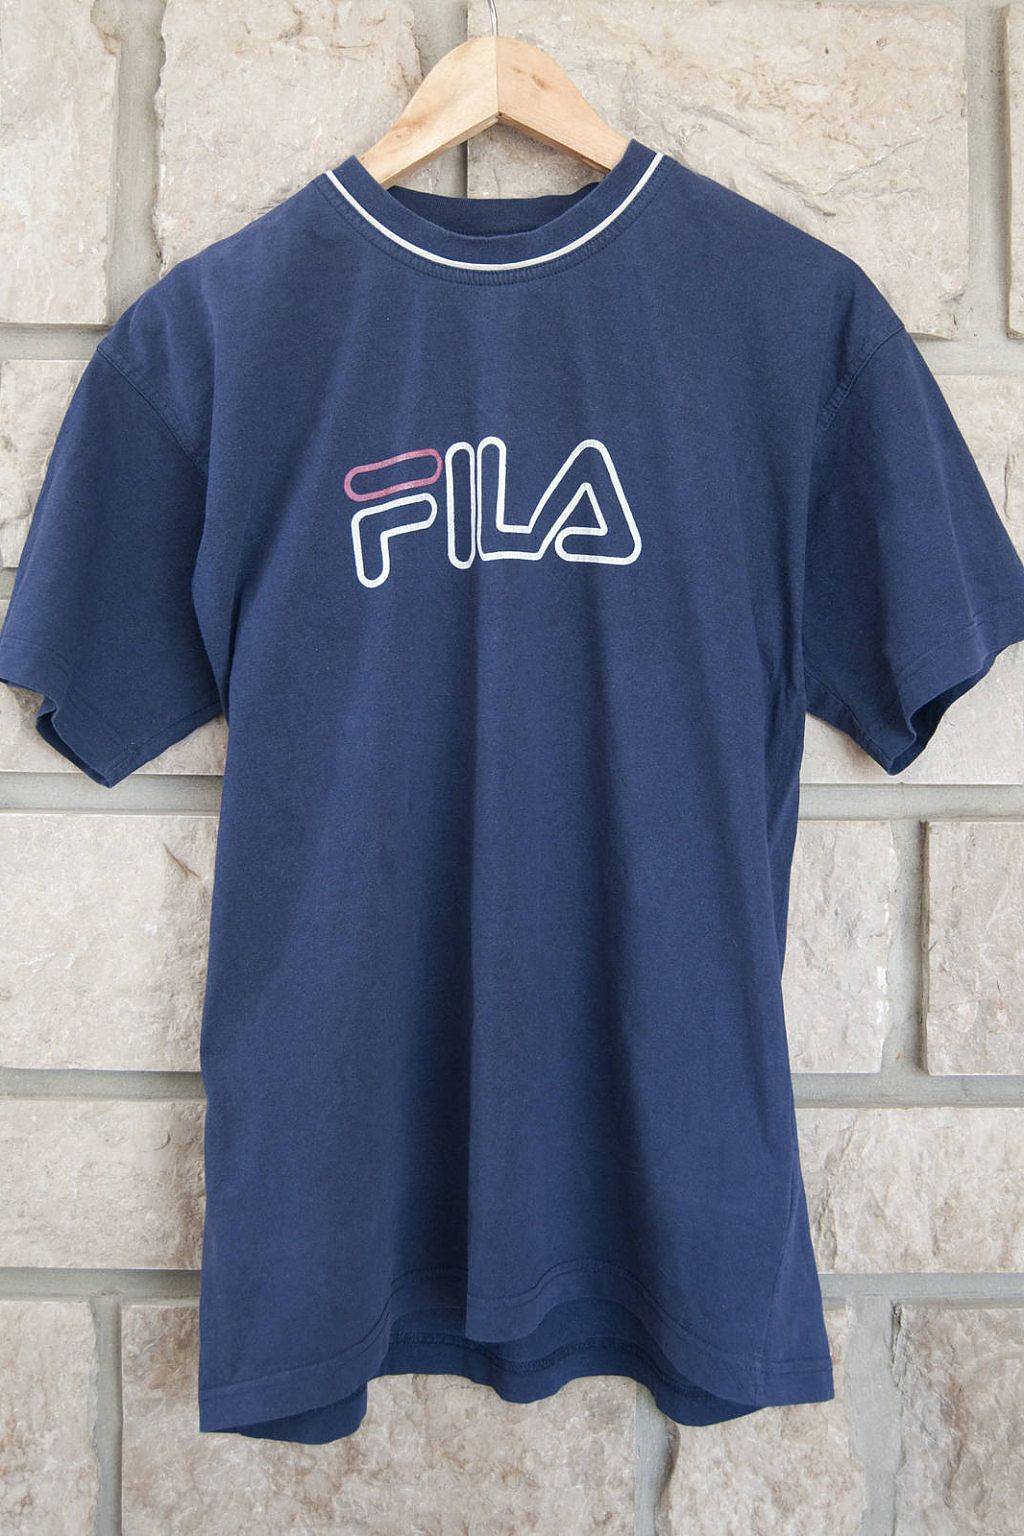 5f854bc31 Vintage blue tshirt for mens. This short sleeve t shirt is from the Fils  brand. In cotton, size XL. #tshirt #teeshirt #vintagefashion #vintage  #mensfashion ...